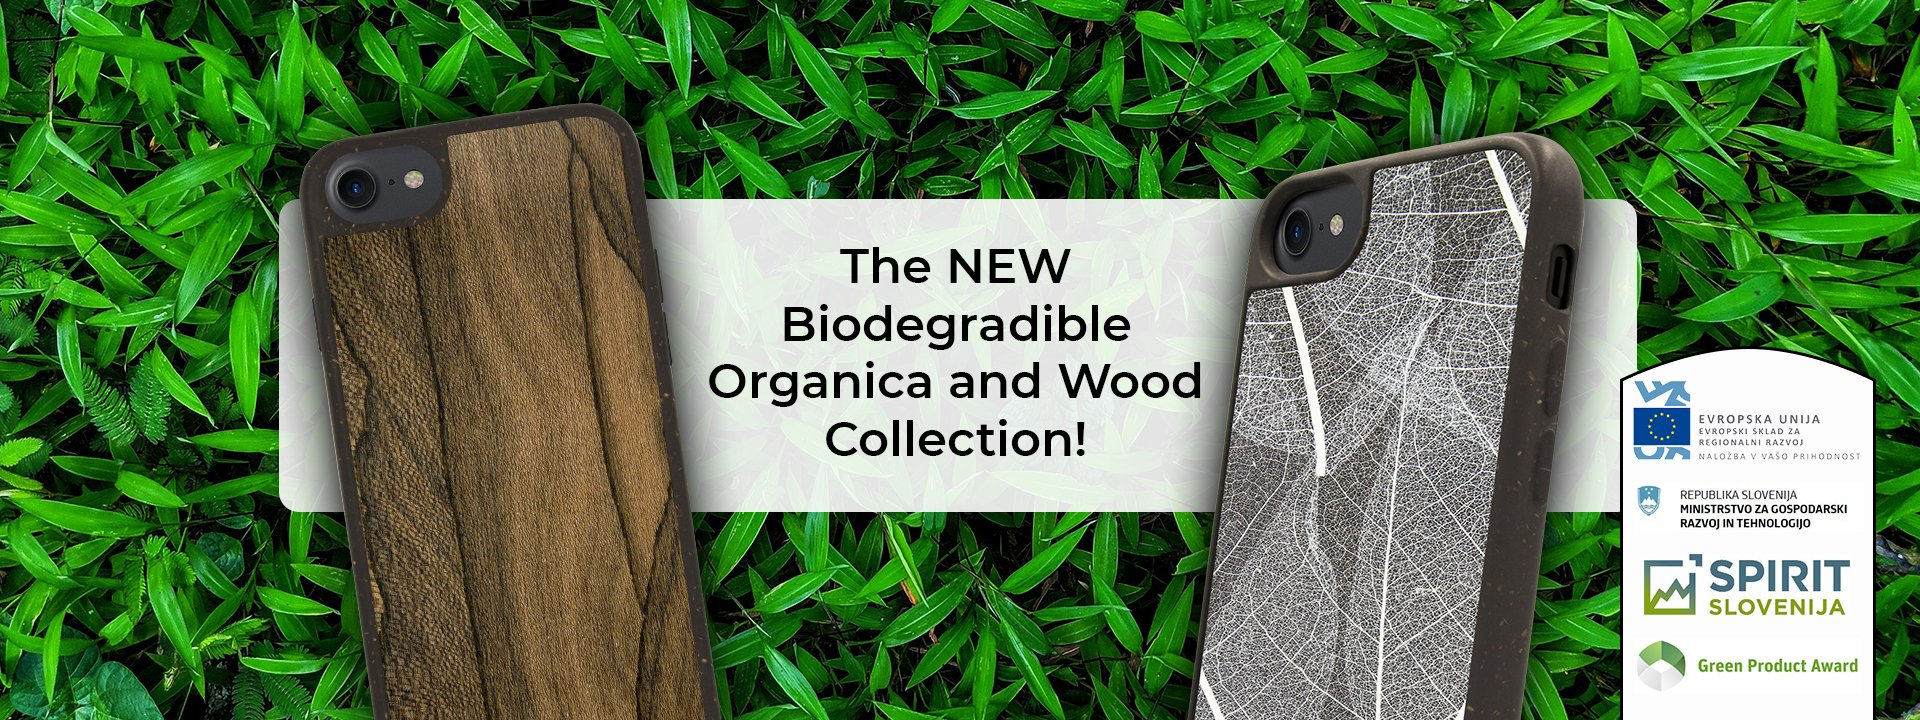 Biodegradable Organica and Wood Collection Phone Case